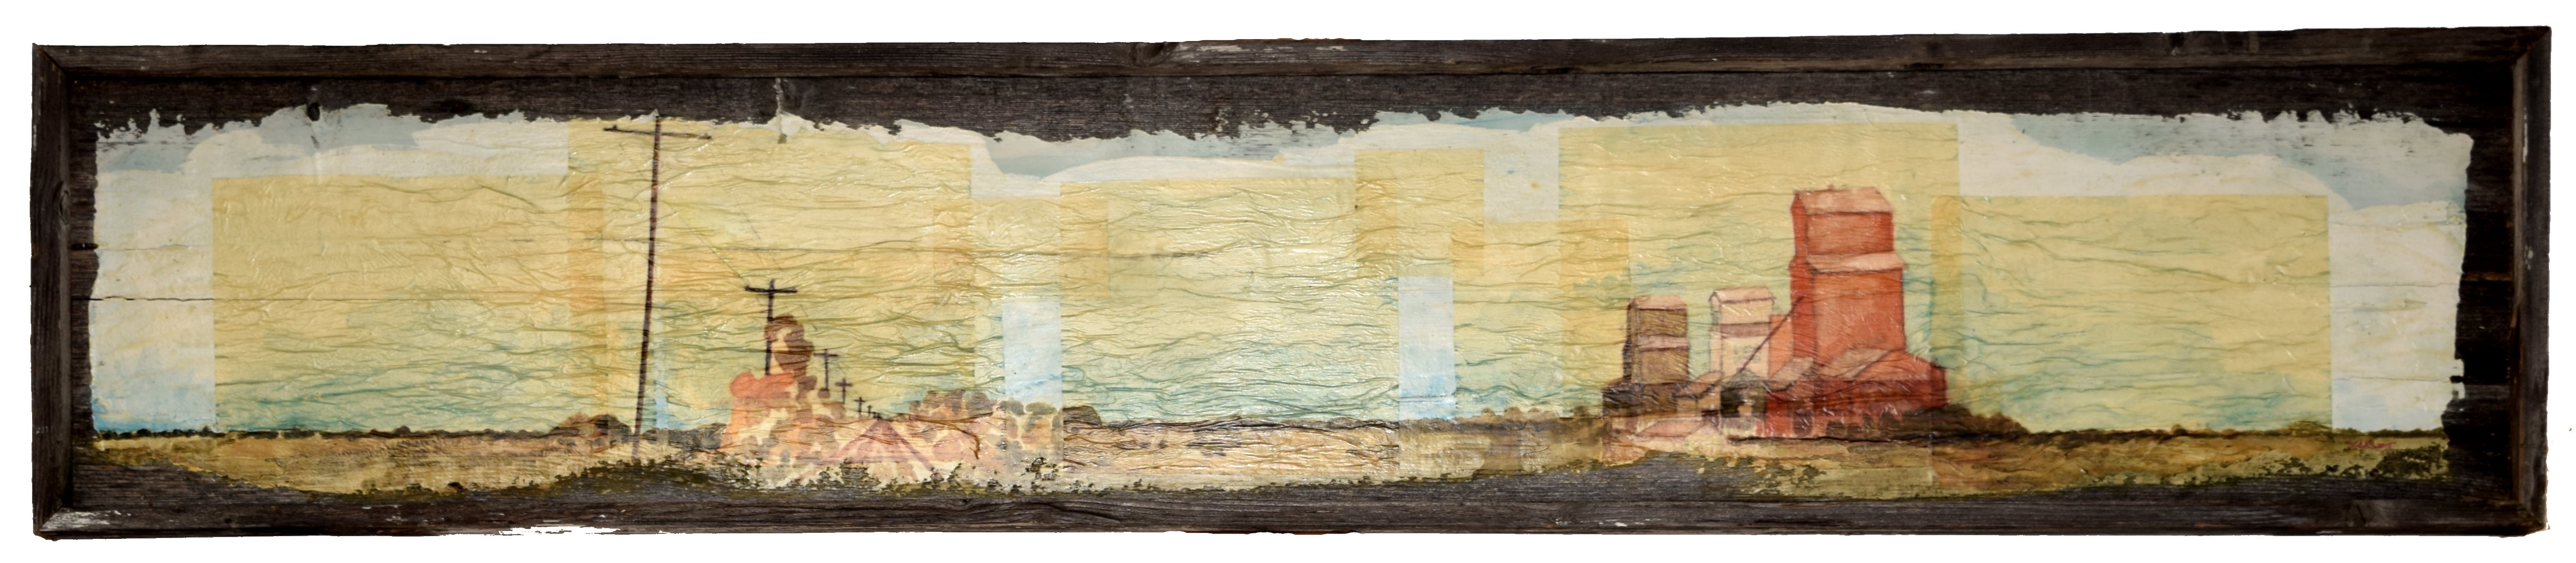 Ed's Elevator 22 Mixed Media on Barnwood 11x62inches July 2014